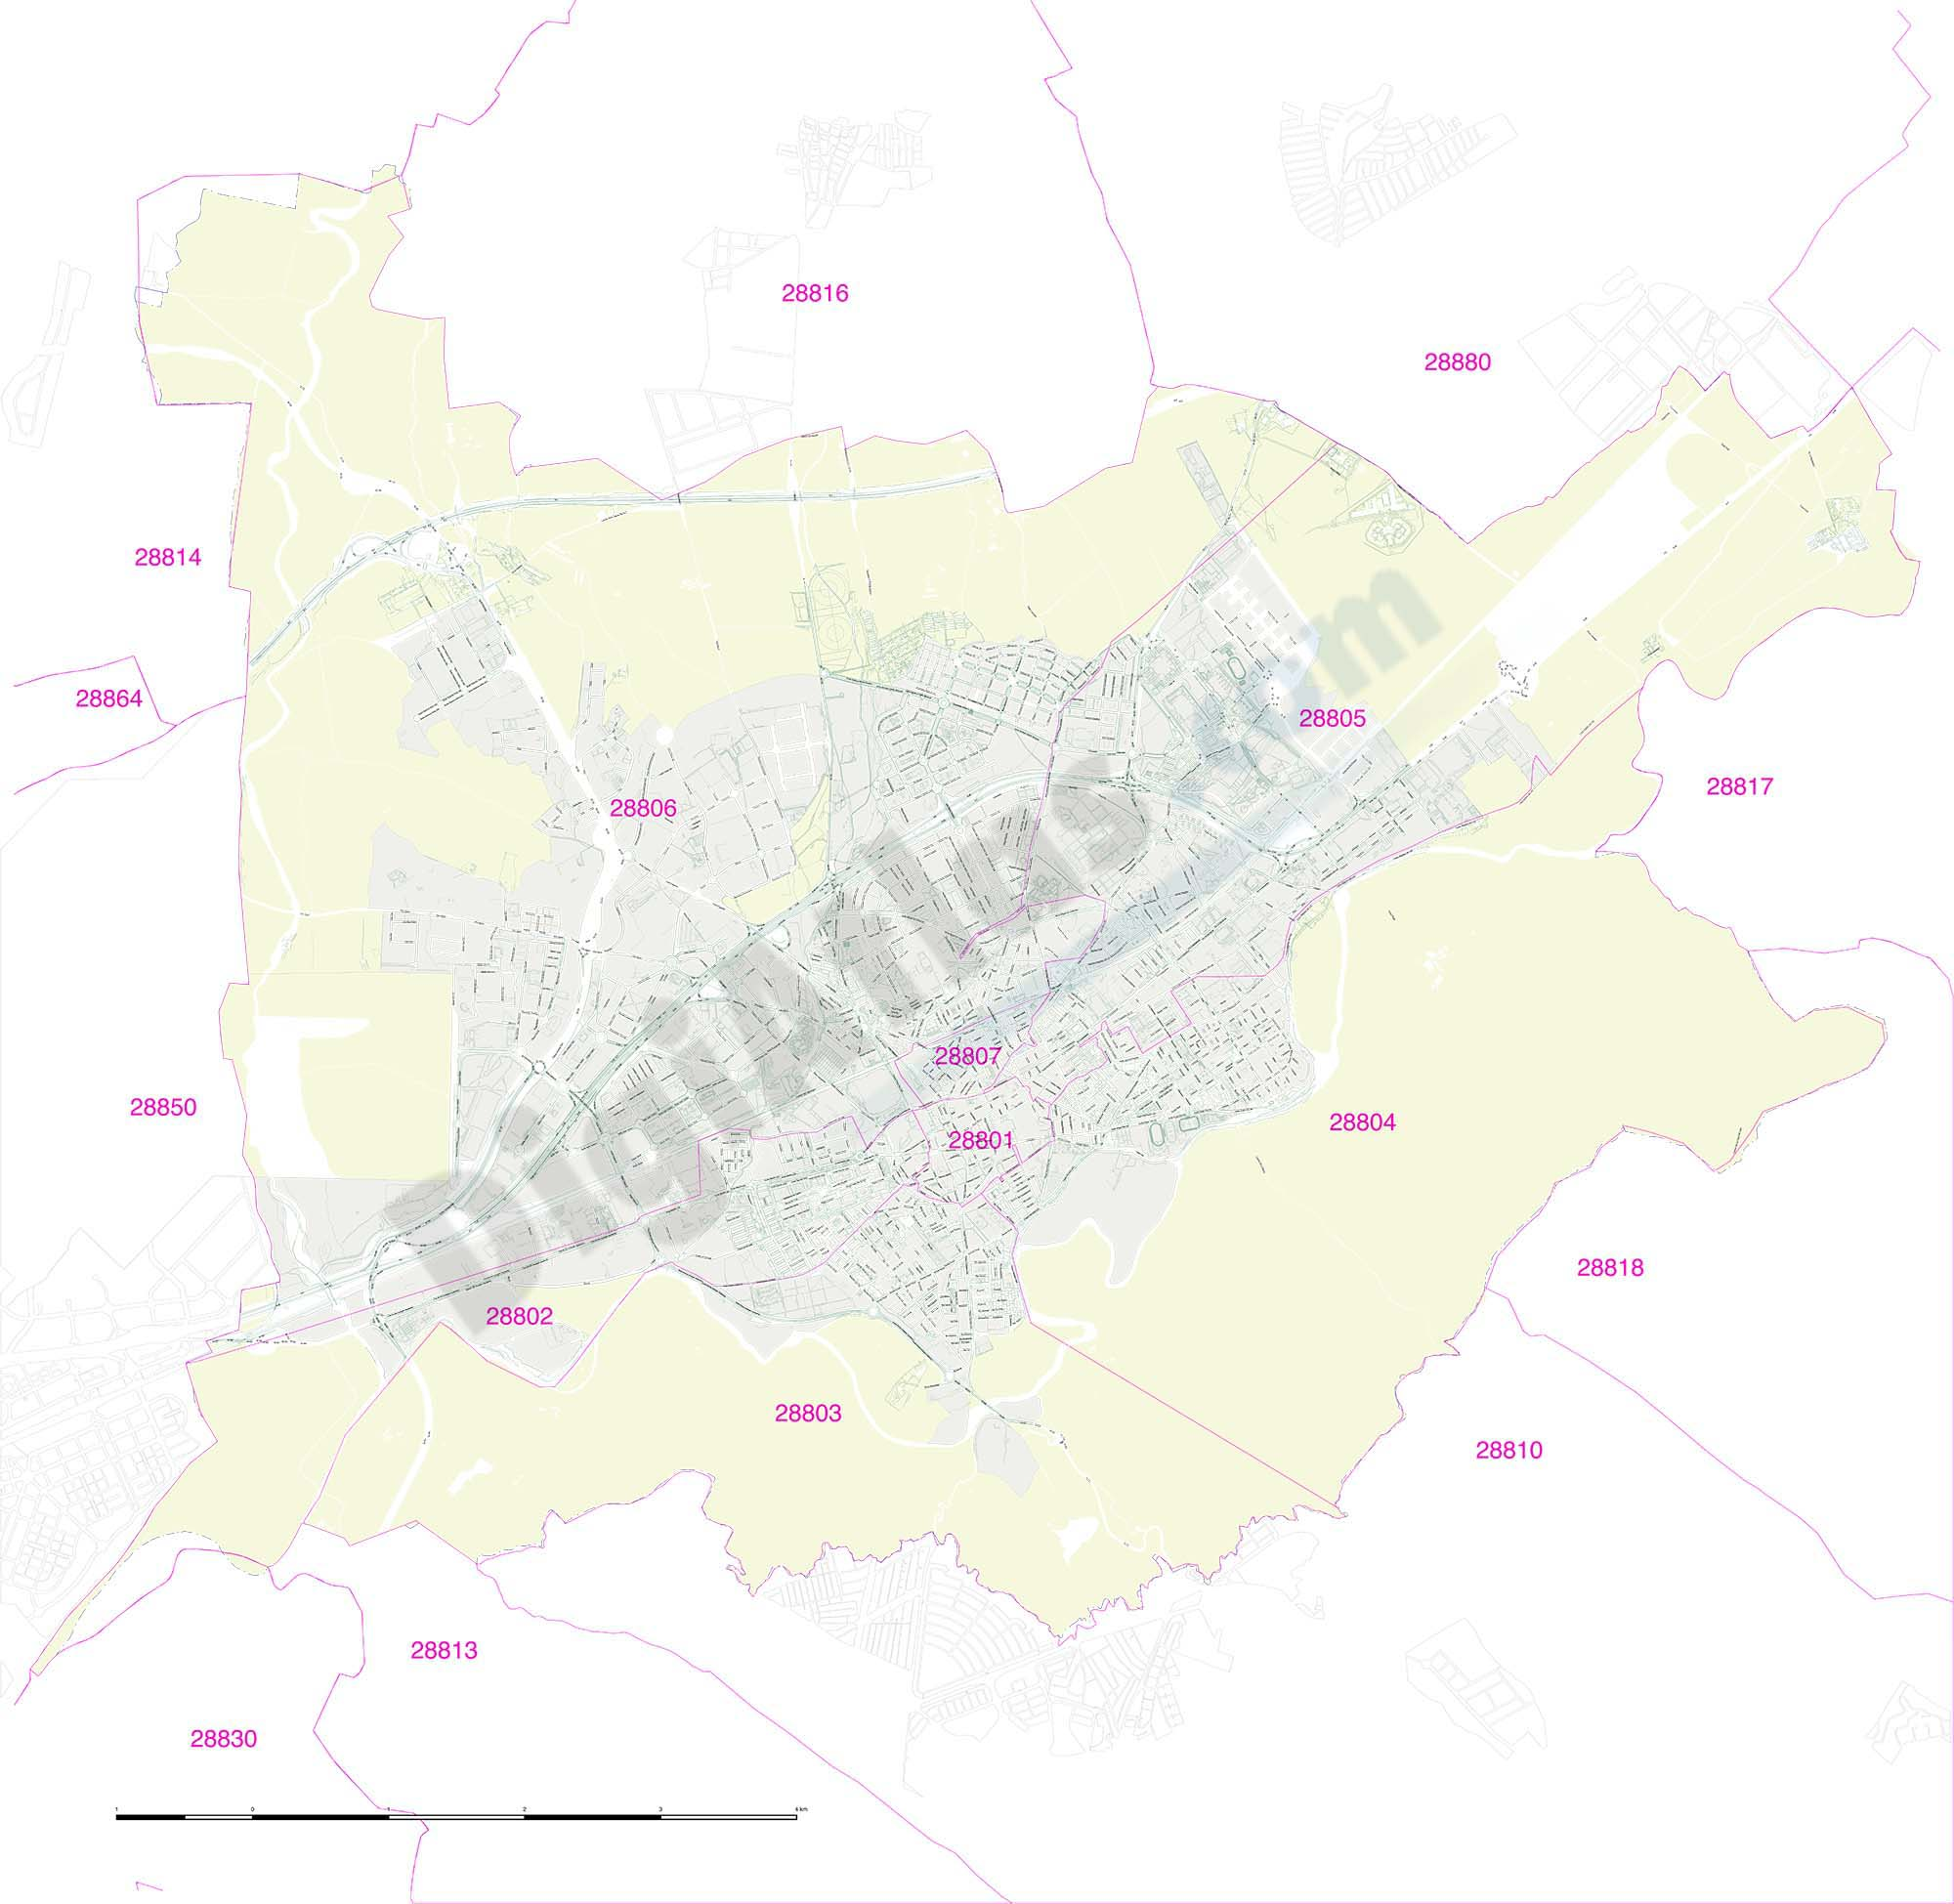 Alcala de Henares city map with postcode districts